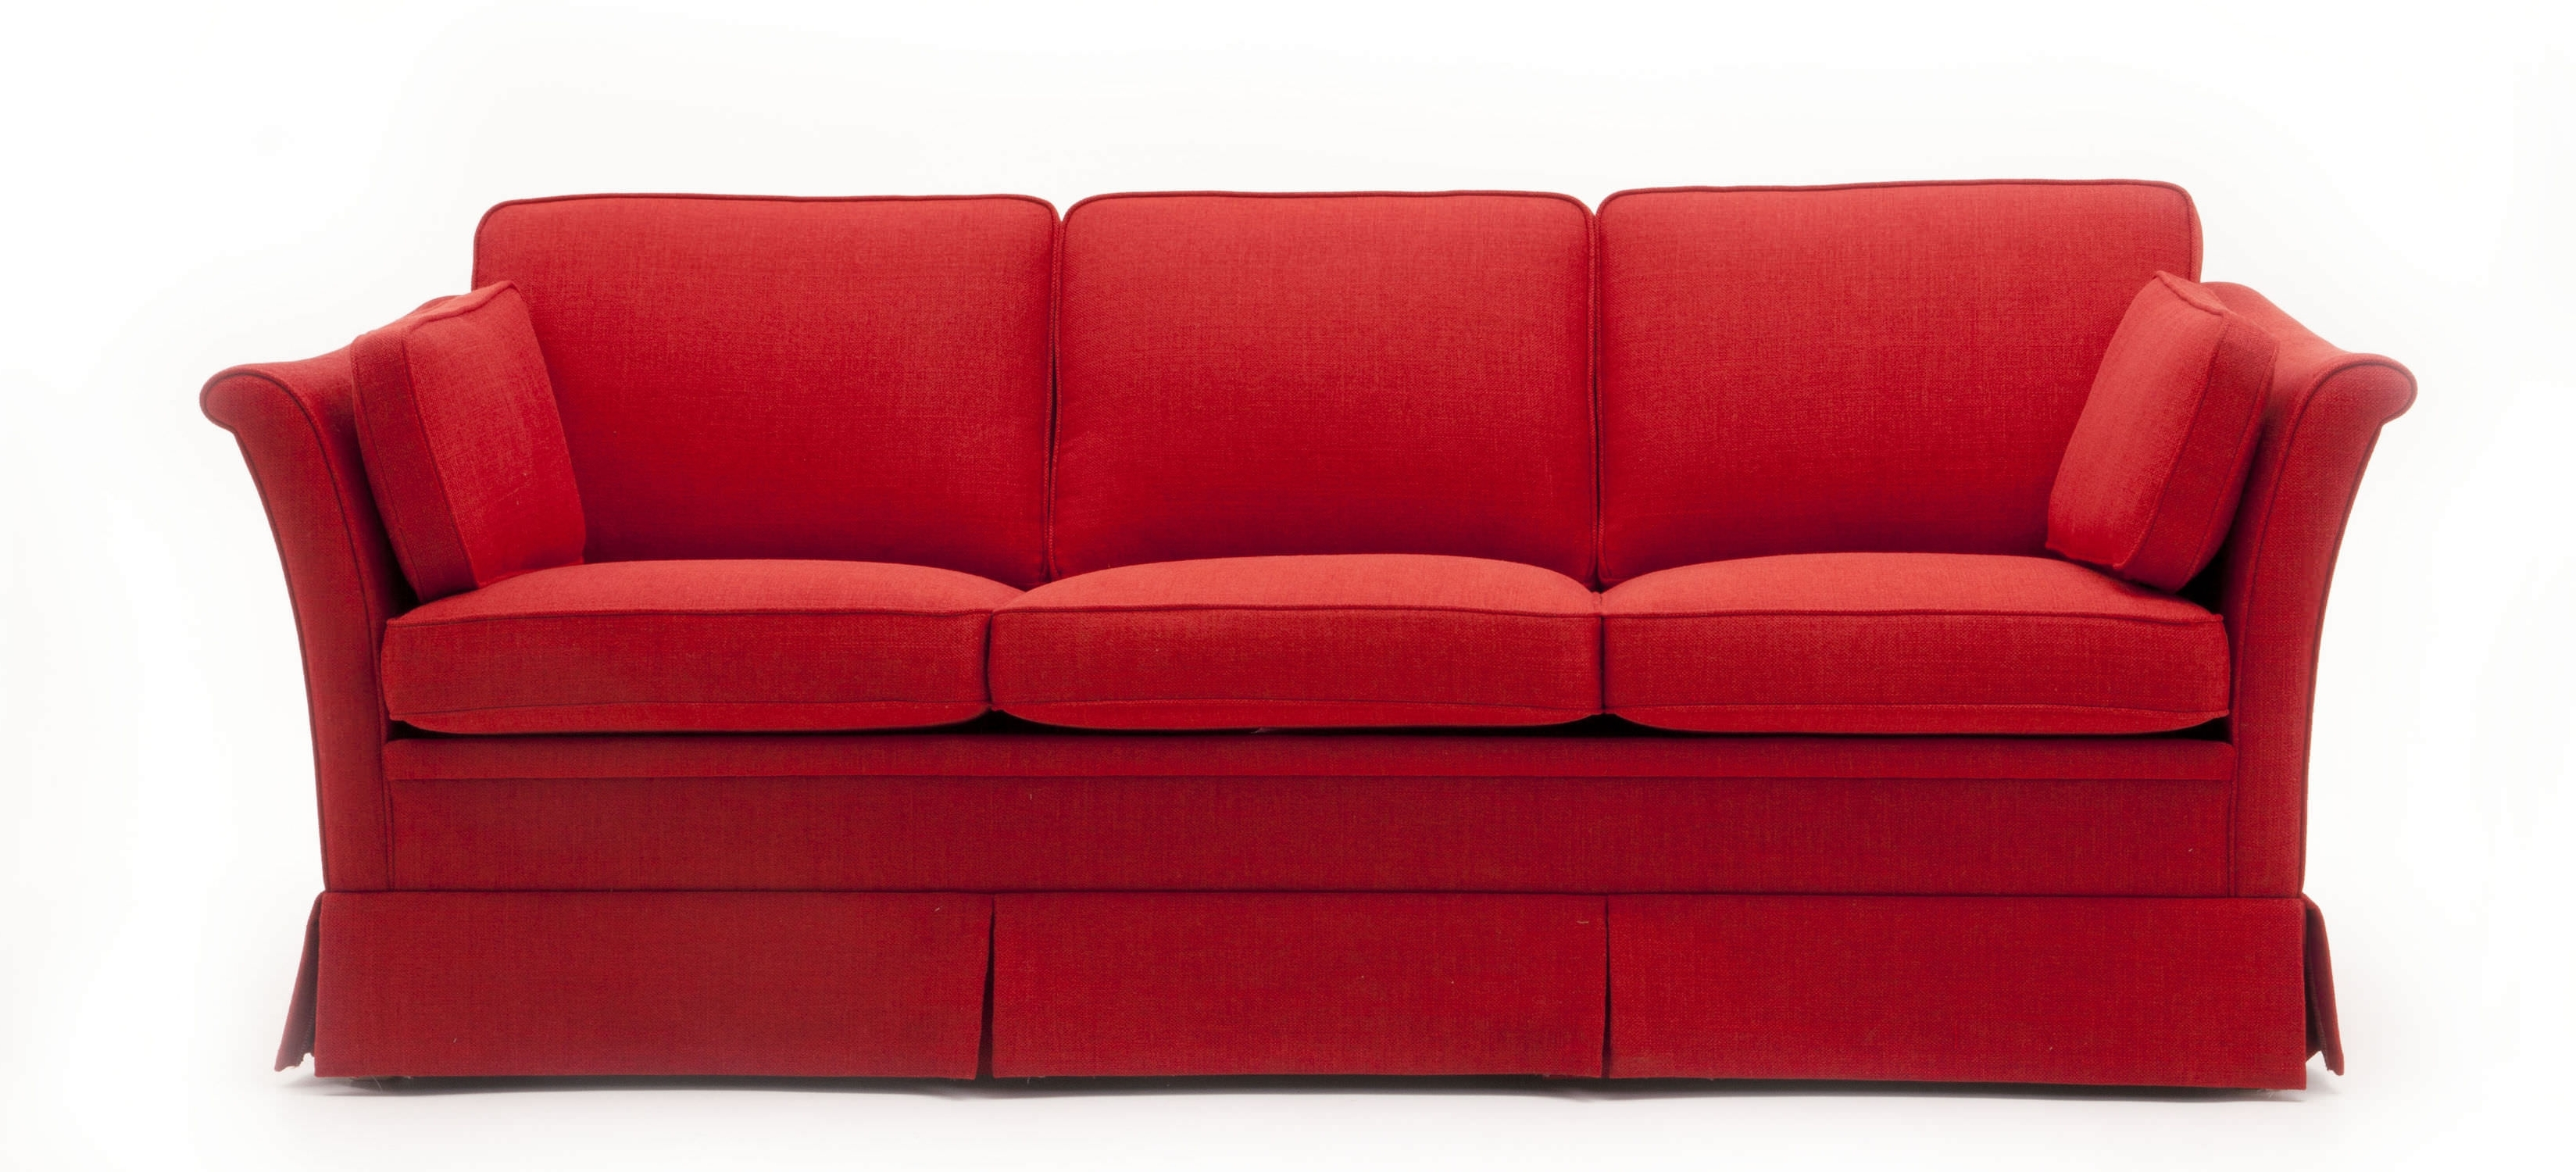 Sofas With Removable Covers Throughout Most Popular Traditional Sofa / Fabric / 3 Seater / With Removable Cover (View 15 of 20)